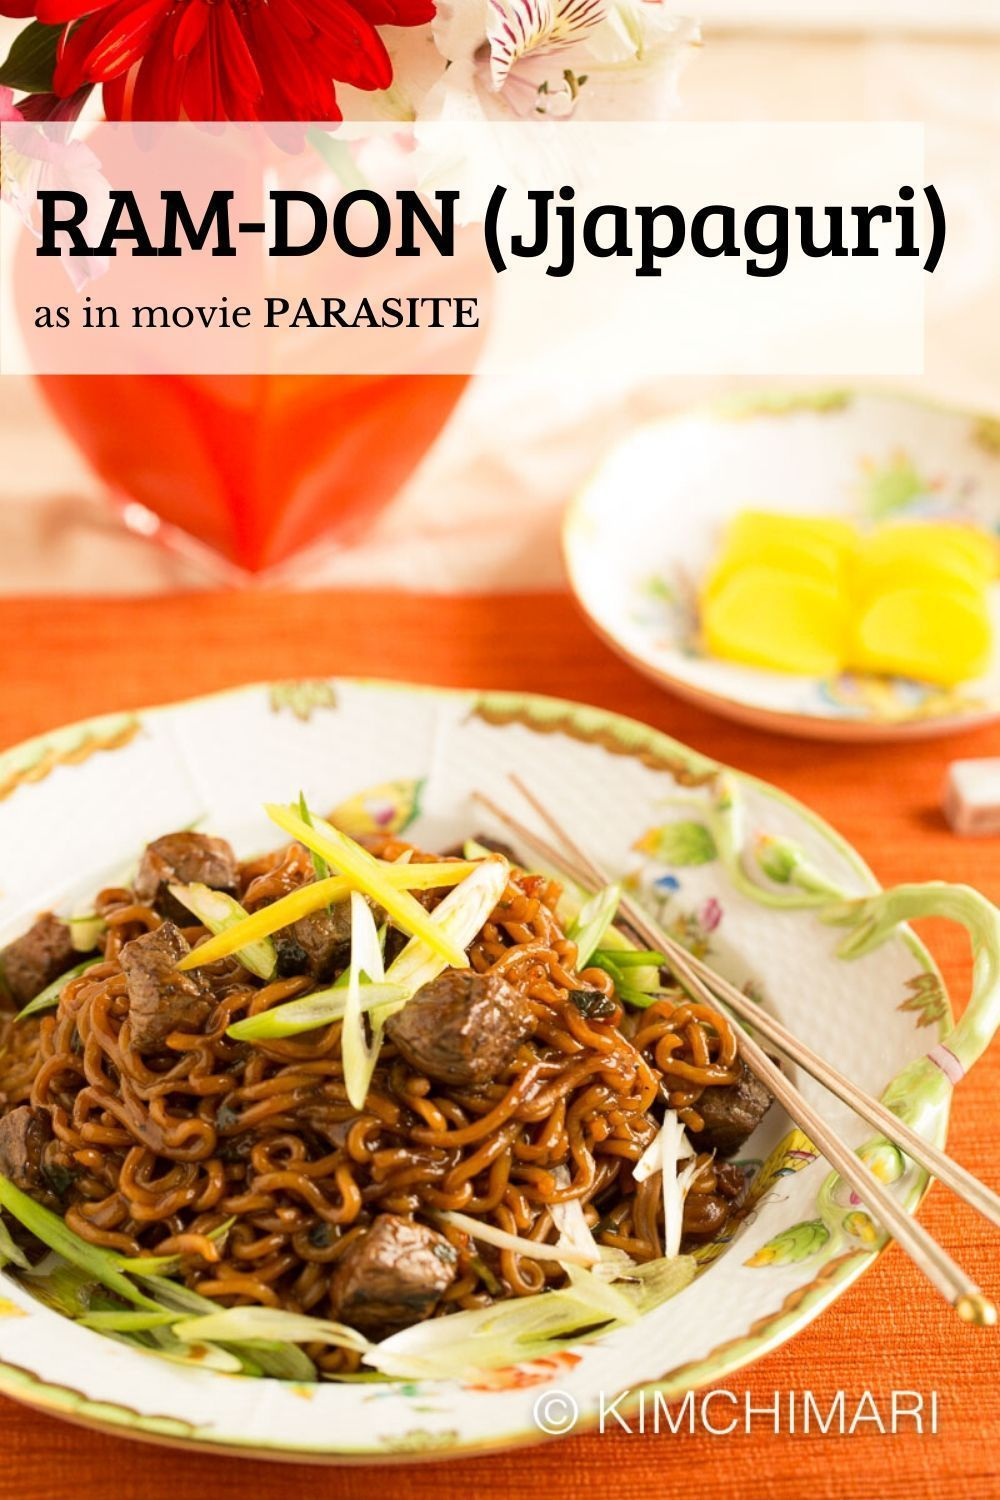 #Instant #Jjapaguri #Noodles #RamDon Ram-Don (aka Jjapaguri) is made with Jjapagetti and Neoguri noodles, It's yummy chewy noodles in a Jjajang sauce that has a hint of spicy. This dish appears in the movie Parasite. #ramenrecipes #instantnoodles #movieparasite